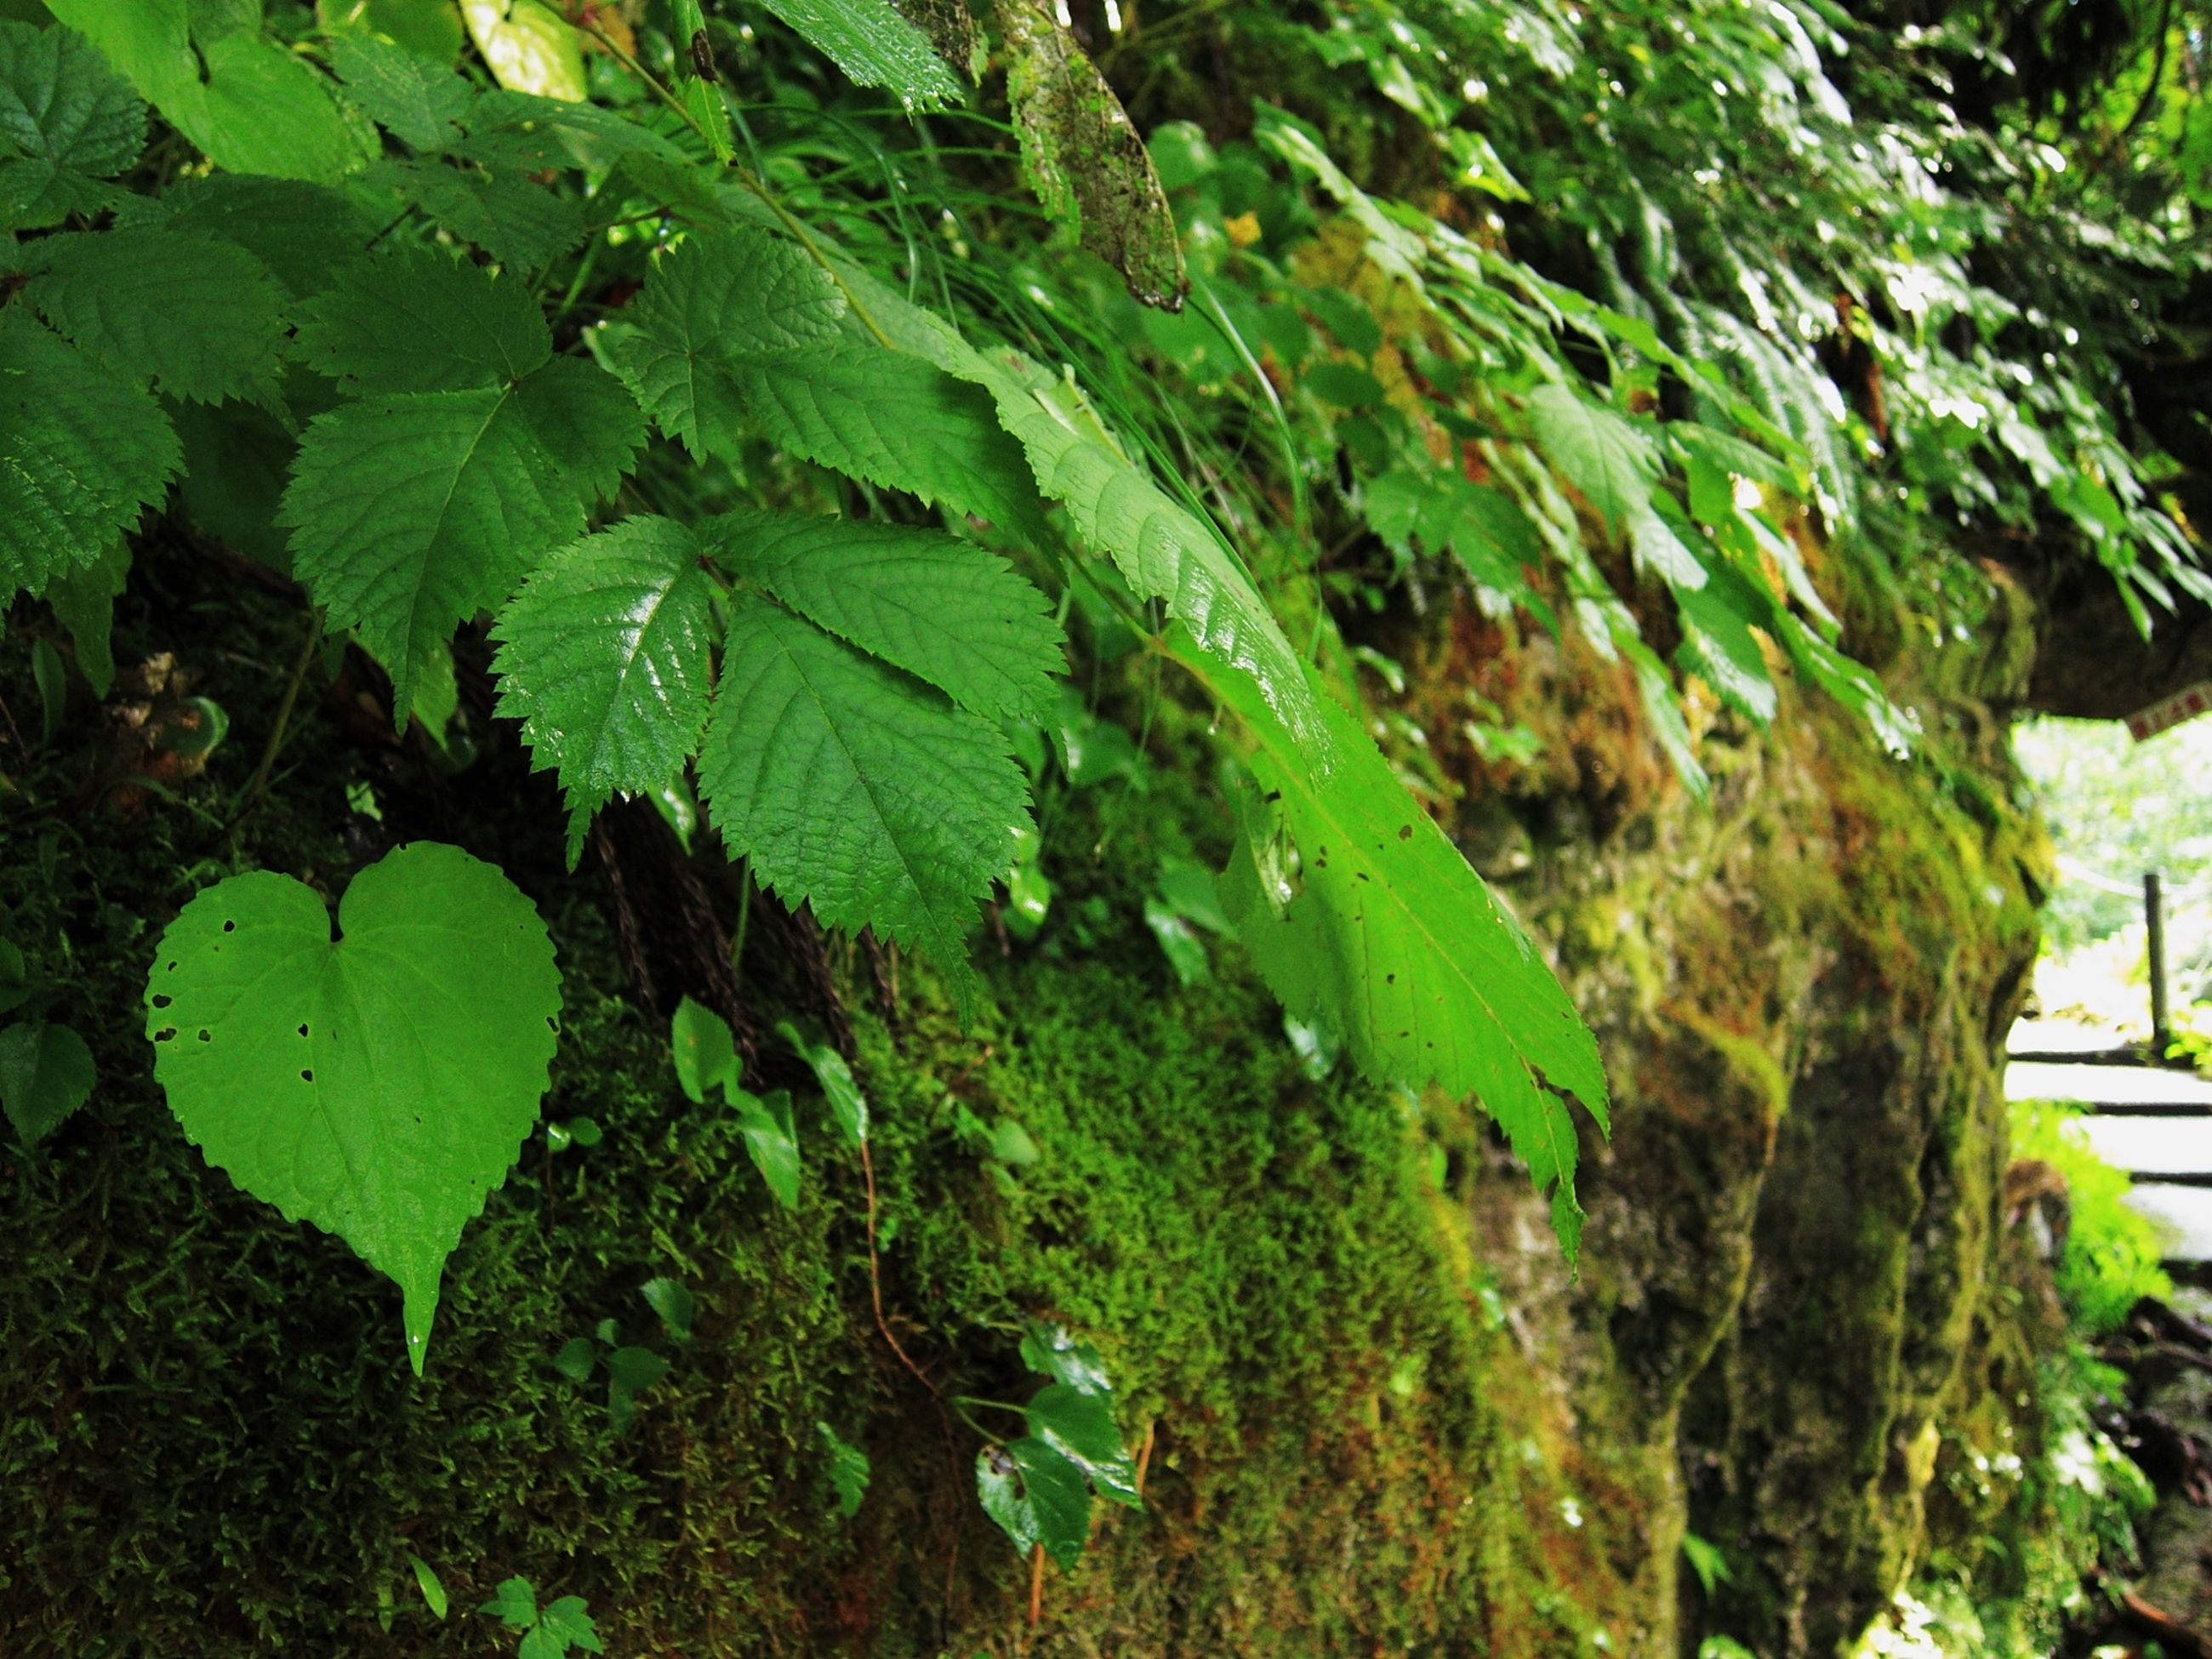 leaf, green color, growth, tree, plant, nature, tree trunk, branch, growing, ivy, close-up, sunlight, day, outdoors, tranquility, no people, leaves, lush foliage, green, front or back yard